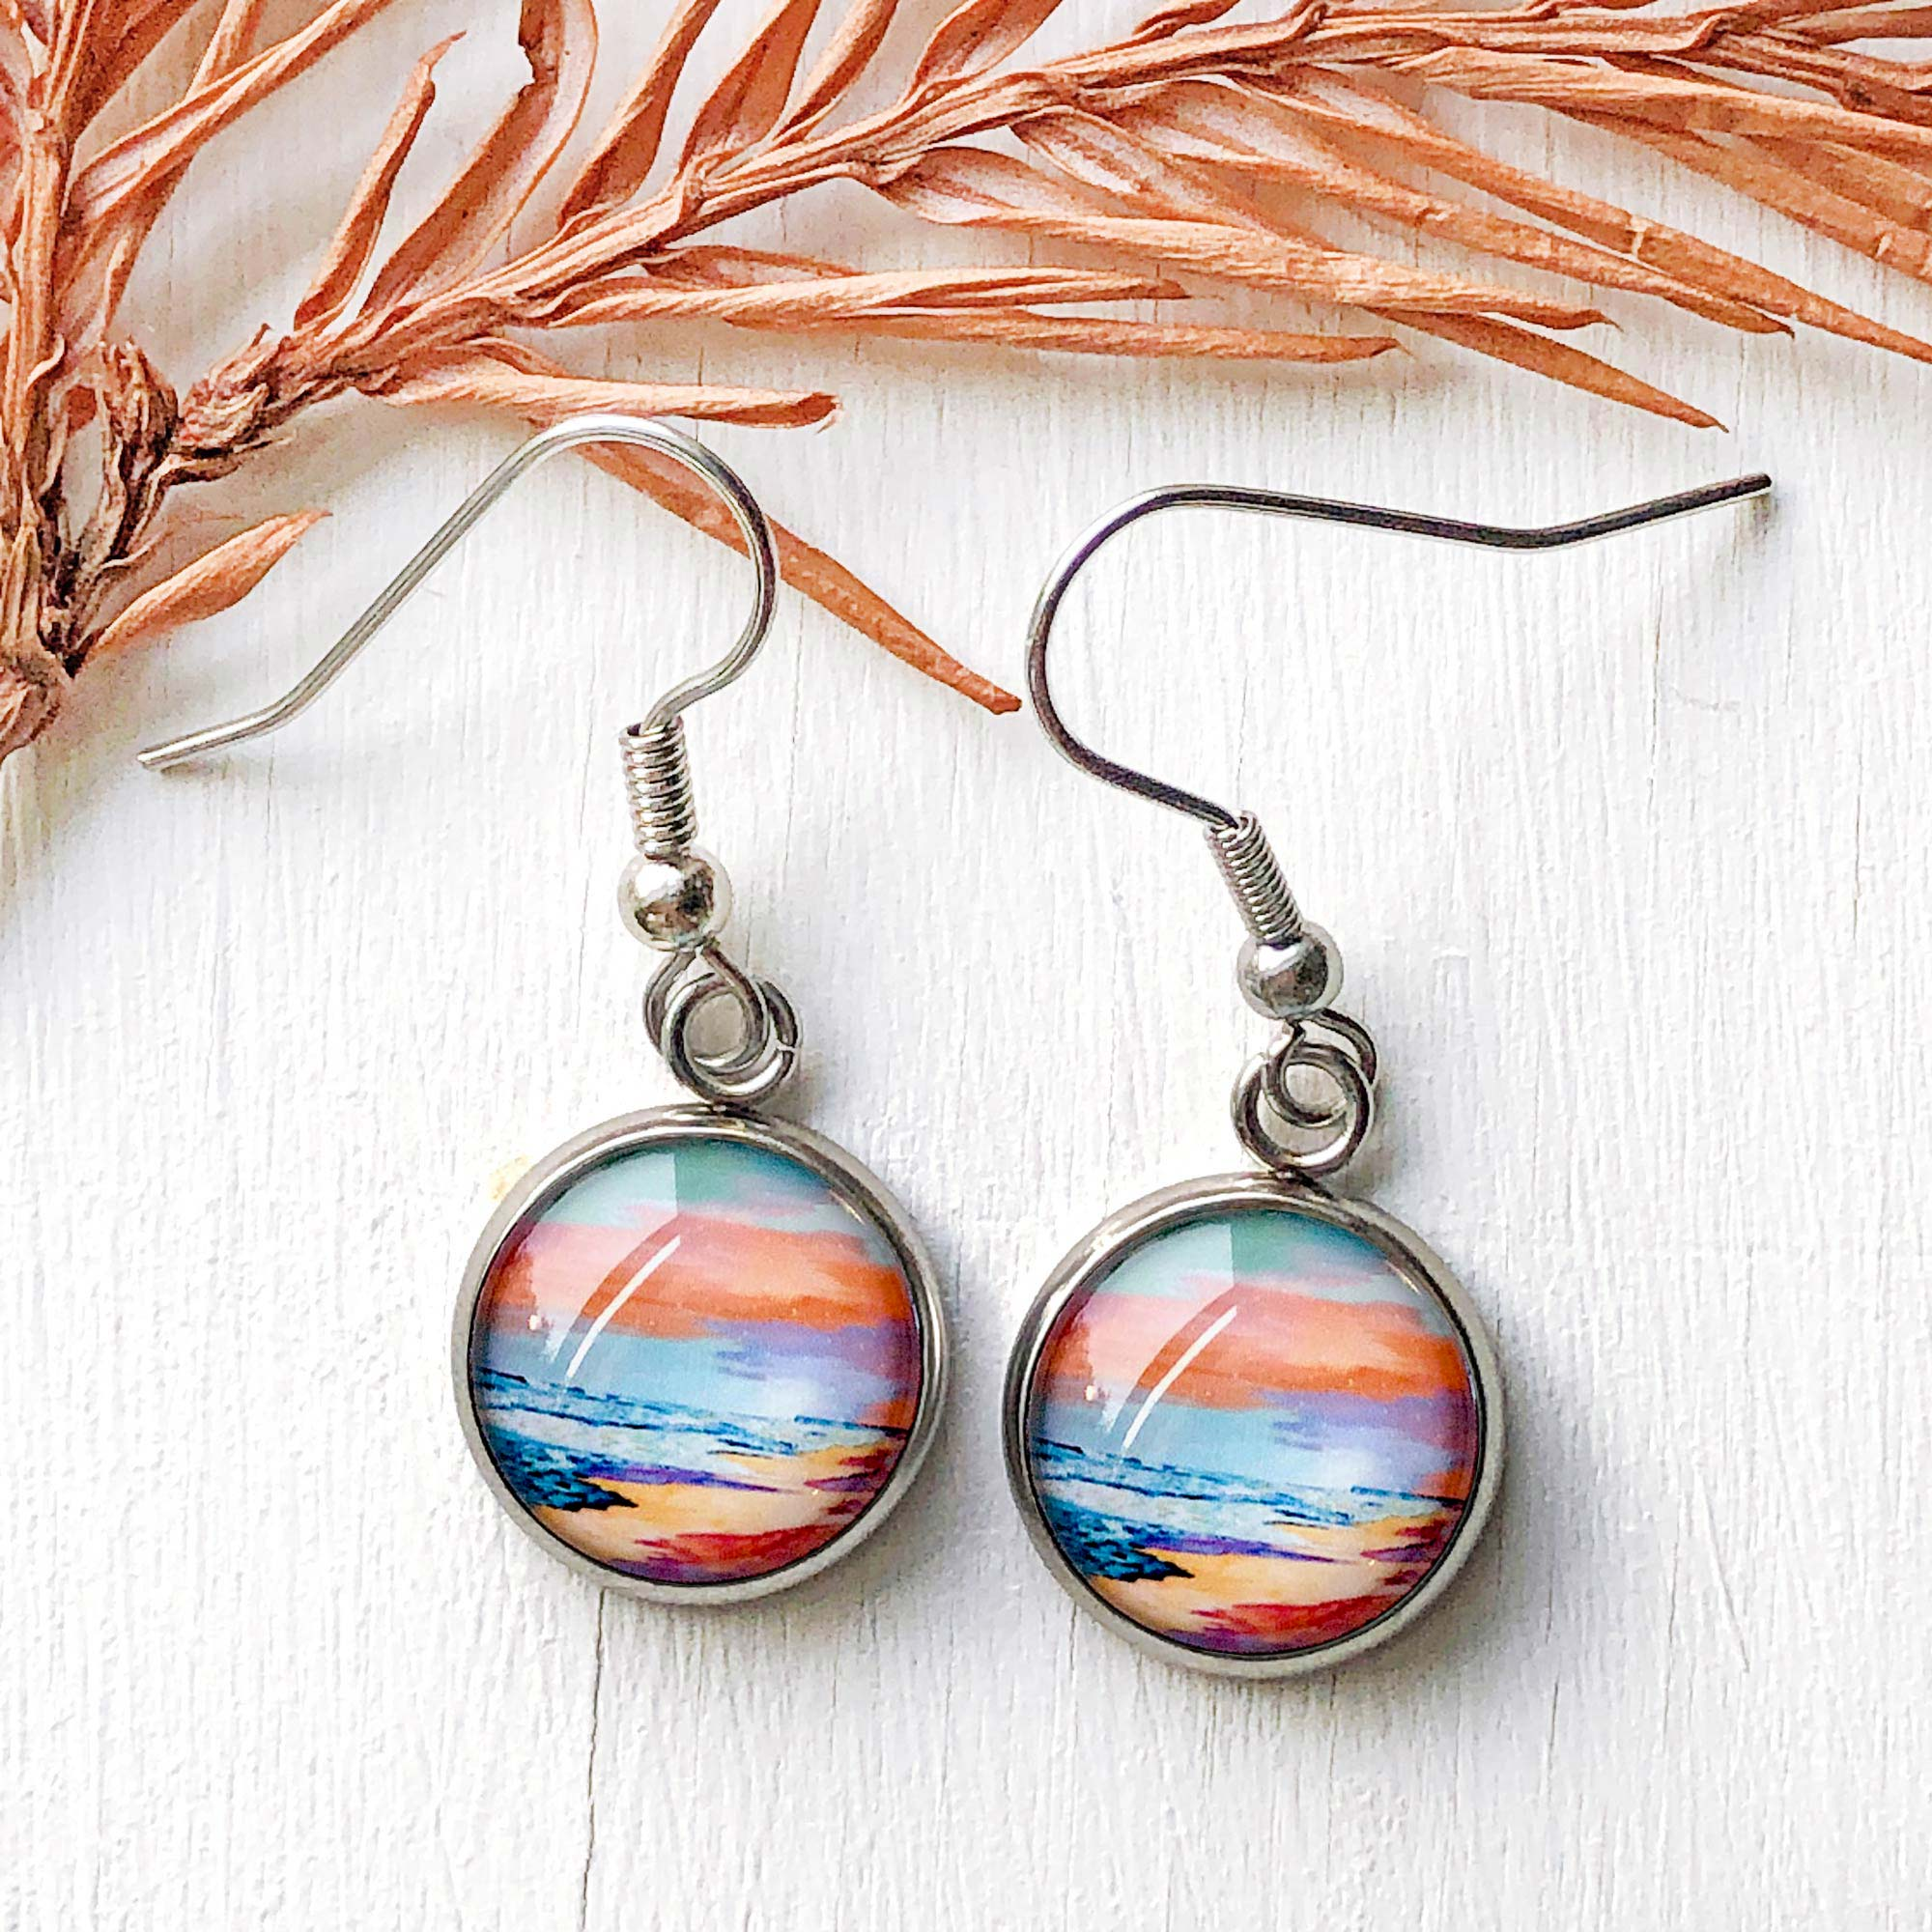 Peaceful Seascape I - Dangle, Stud or Leverback Earrings